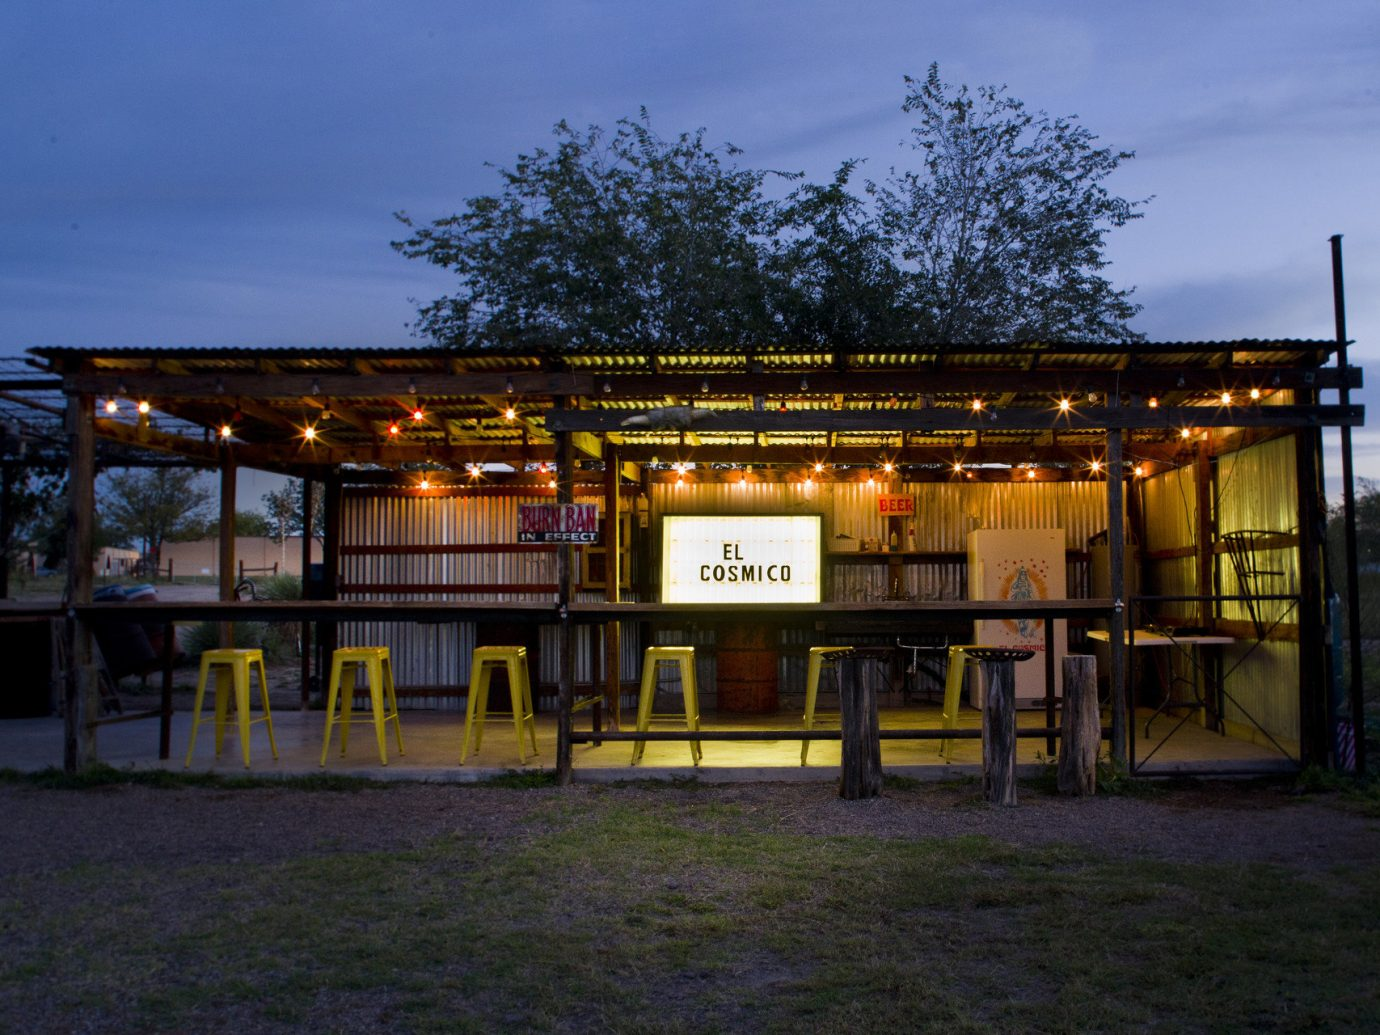 artistic artsy Bar bar seating dusk Glamping Hip isolation lights Nature night lights Night Sky Nightlife outdoor bar Outdoors Outdoors + Adventure quirky remote Rustic trees trendy Weekend Getaways outdoor sky grass night evening home sign